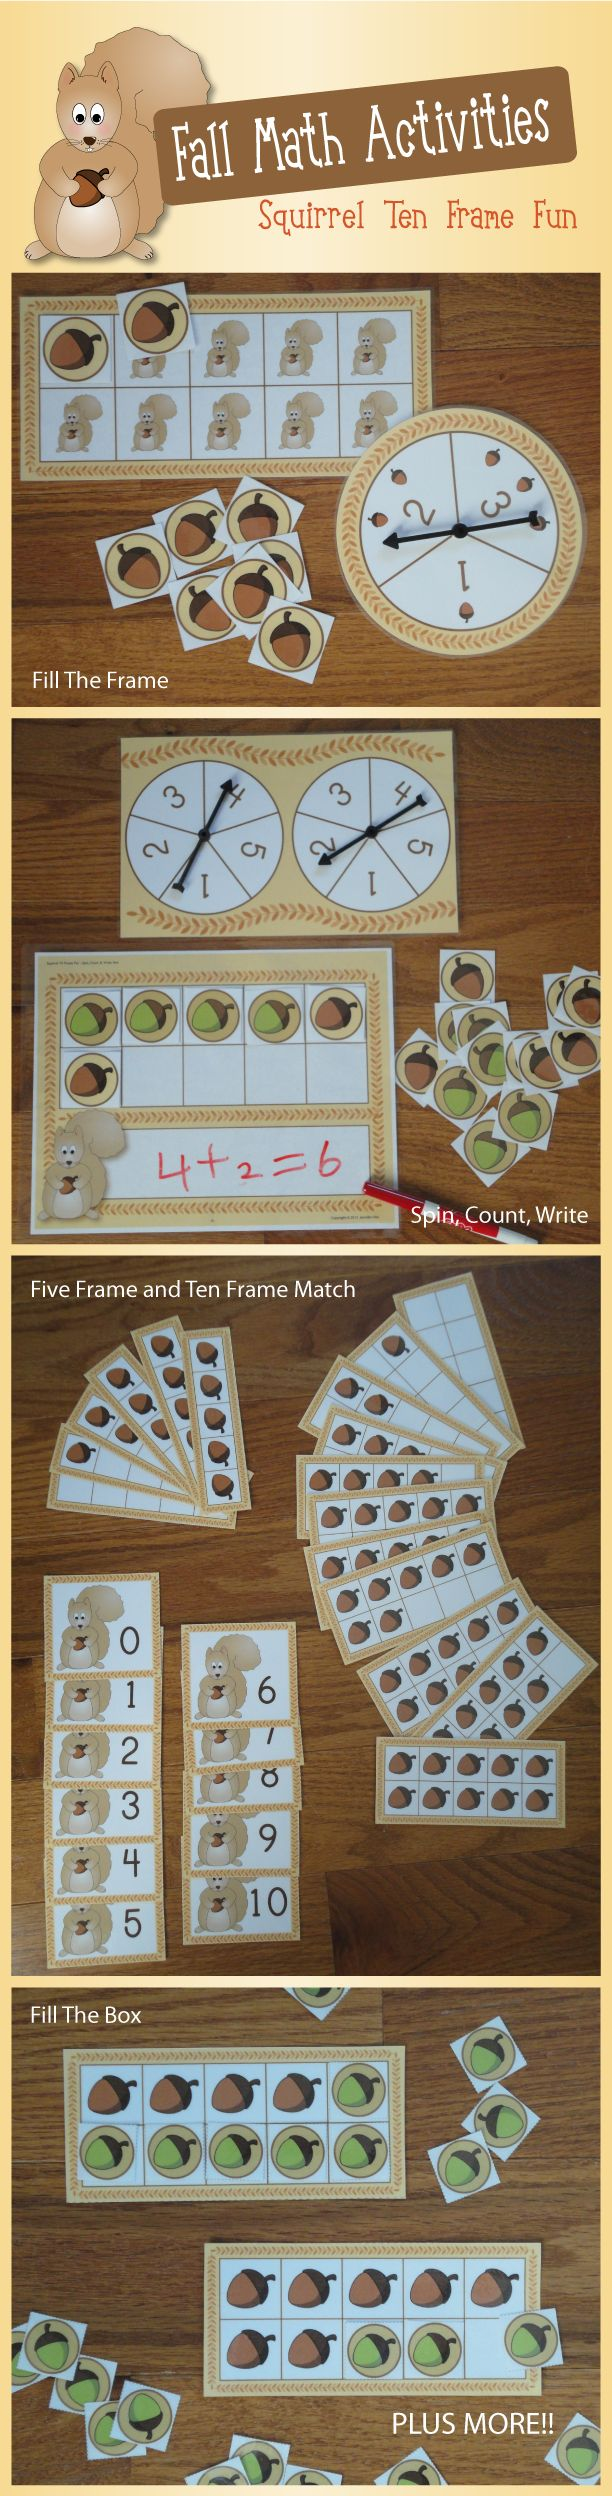 Fall inspired math activities.